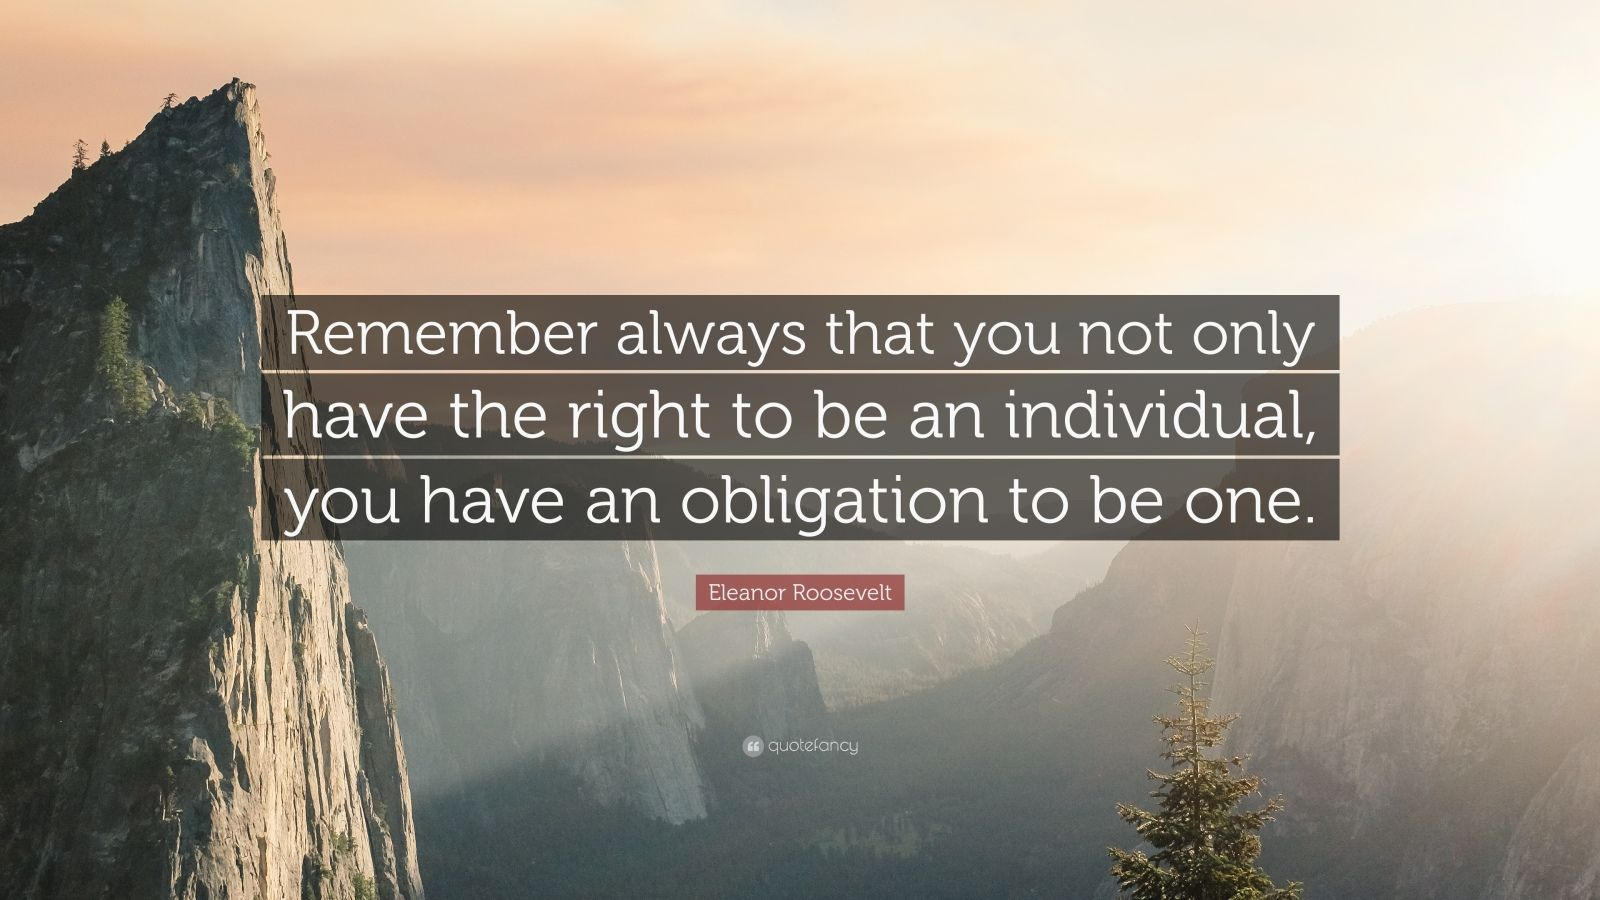 """Eleanor Roosevelt Quote: """"Remember always that you not only have the right to be an individual, you have an obligation to be one."""""""